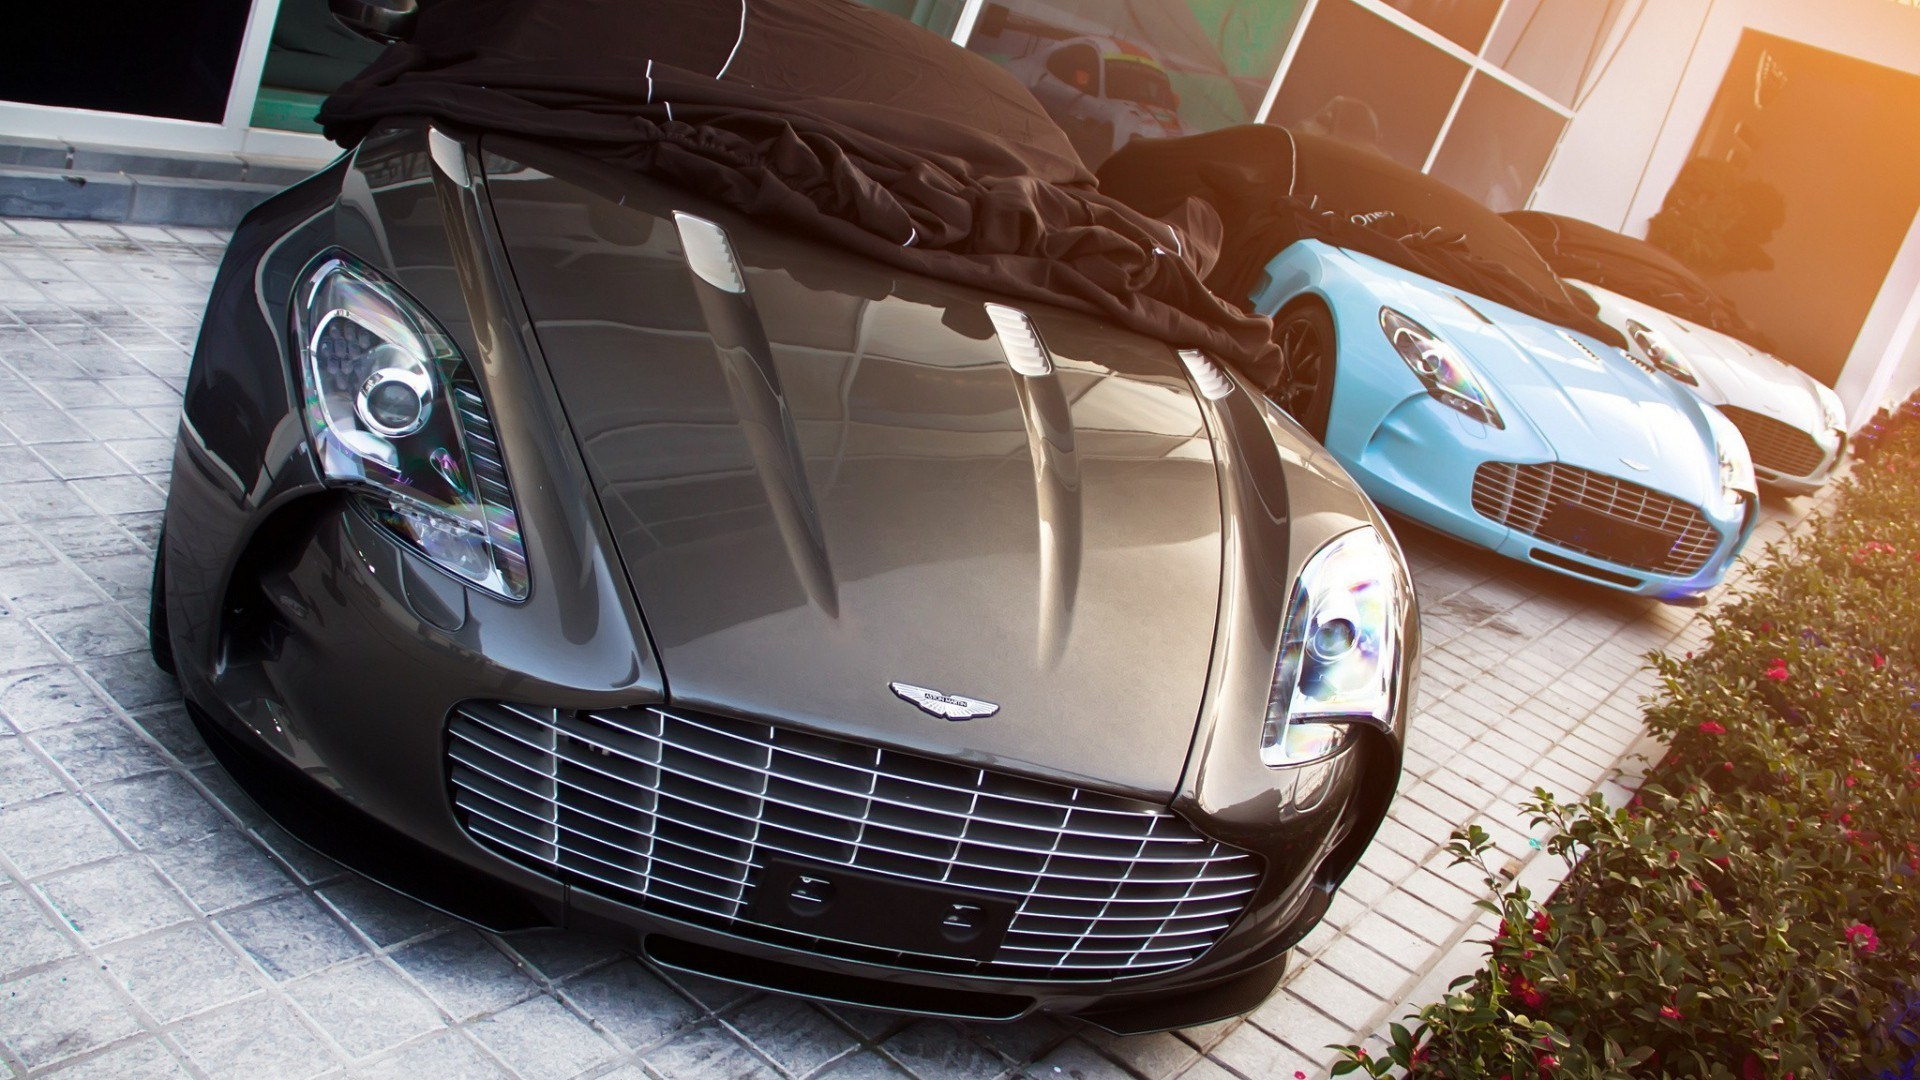 Free 3d Hd Wallpapers Pc Full Screen Download Aston - Aston Martin Cars 1080p , HD Wallpaper & Backgrounds